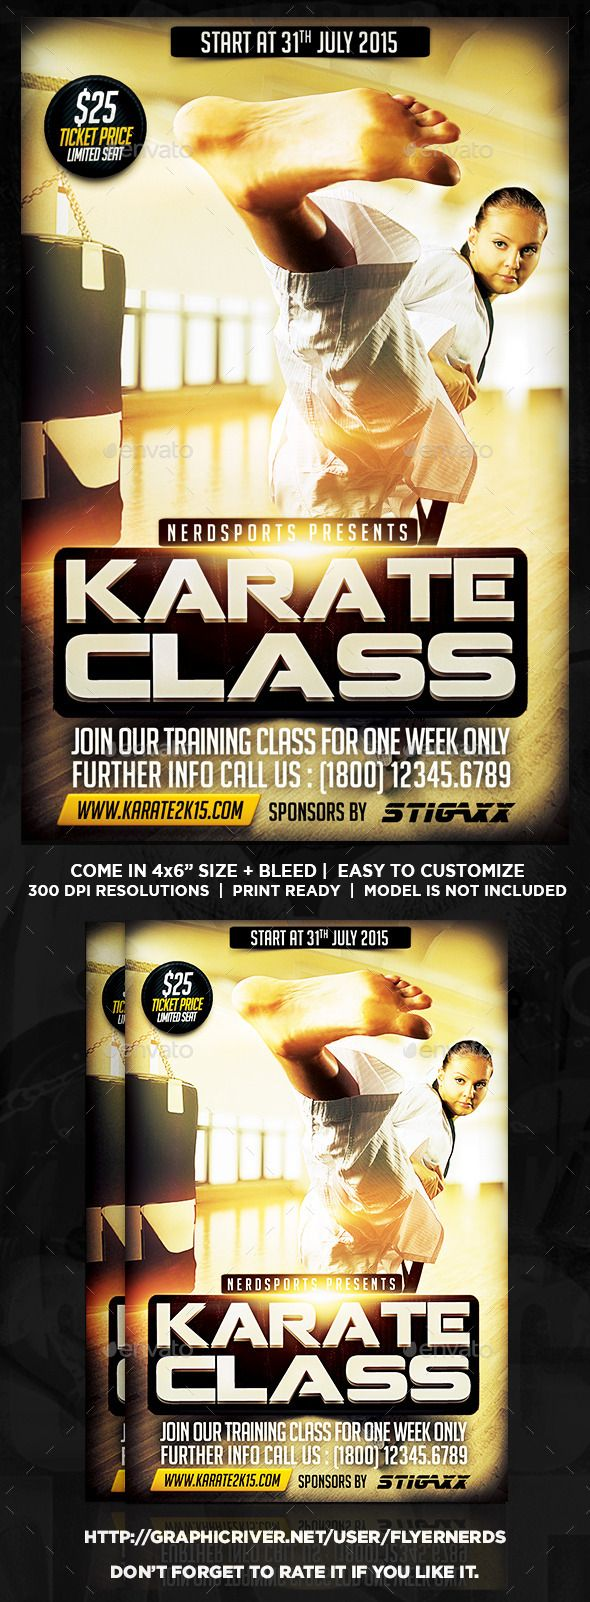 Karate Class 2K15 Sports Flyer by flyernerds Karate Class 2K15 Sports Flyer Description :46 with bleedPrint Ready ( CMYK, 300DPI ) Easy to edit and fully customizable Model Im